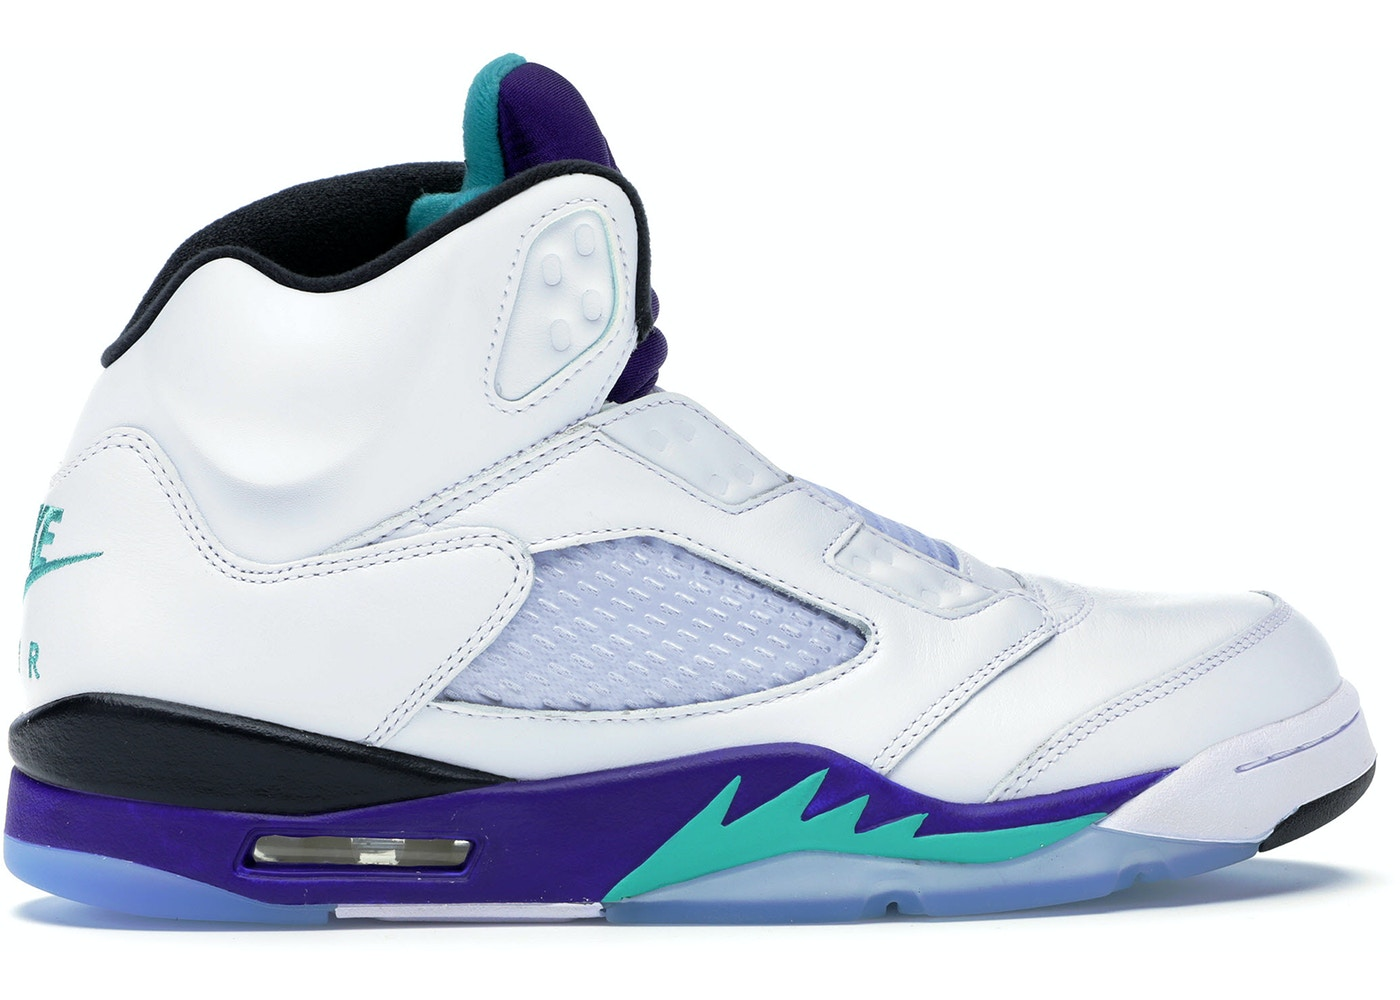 best service 8508d 8af77 Jordan 5 Retro Grape Fresh Prince - AV3919-135